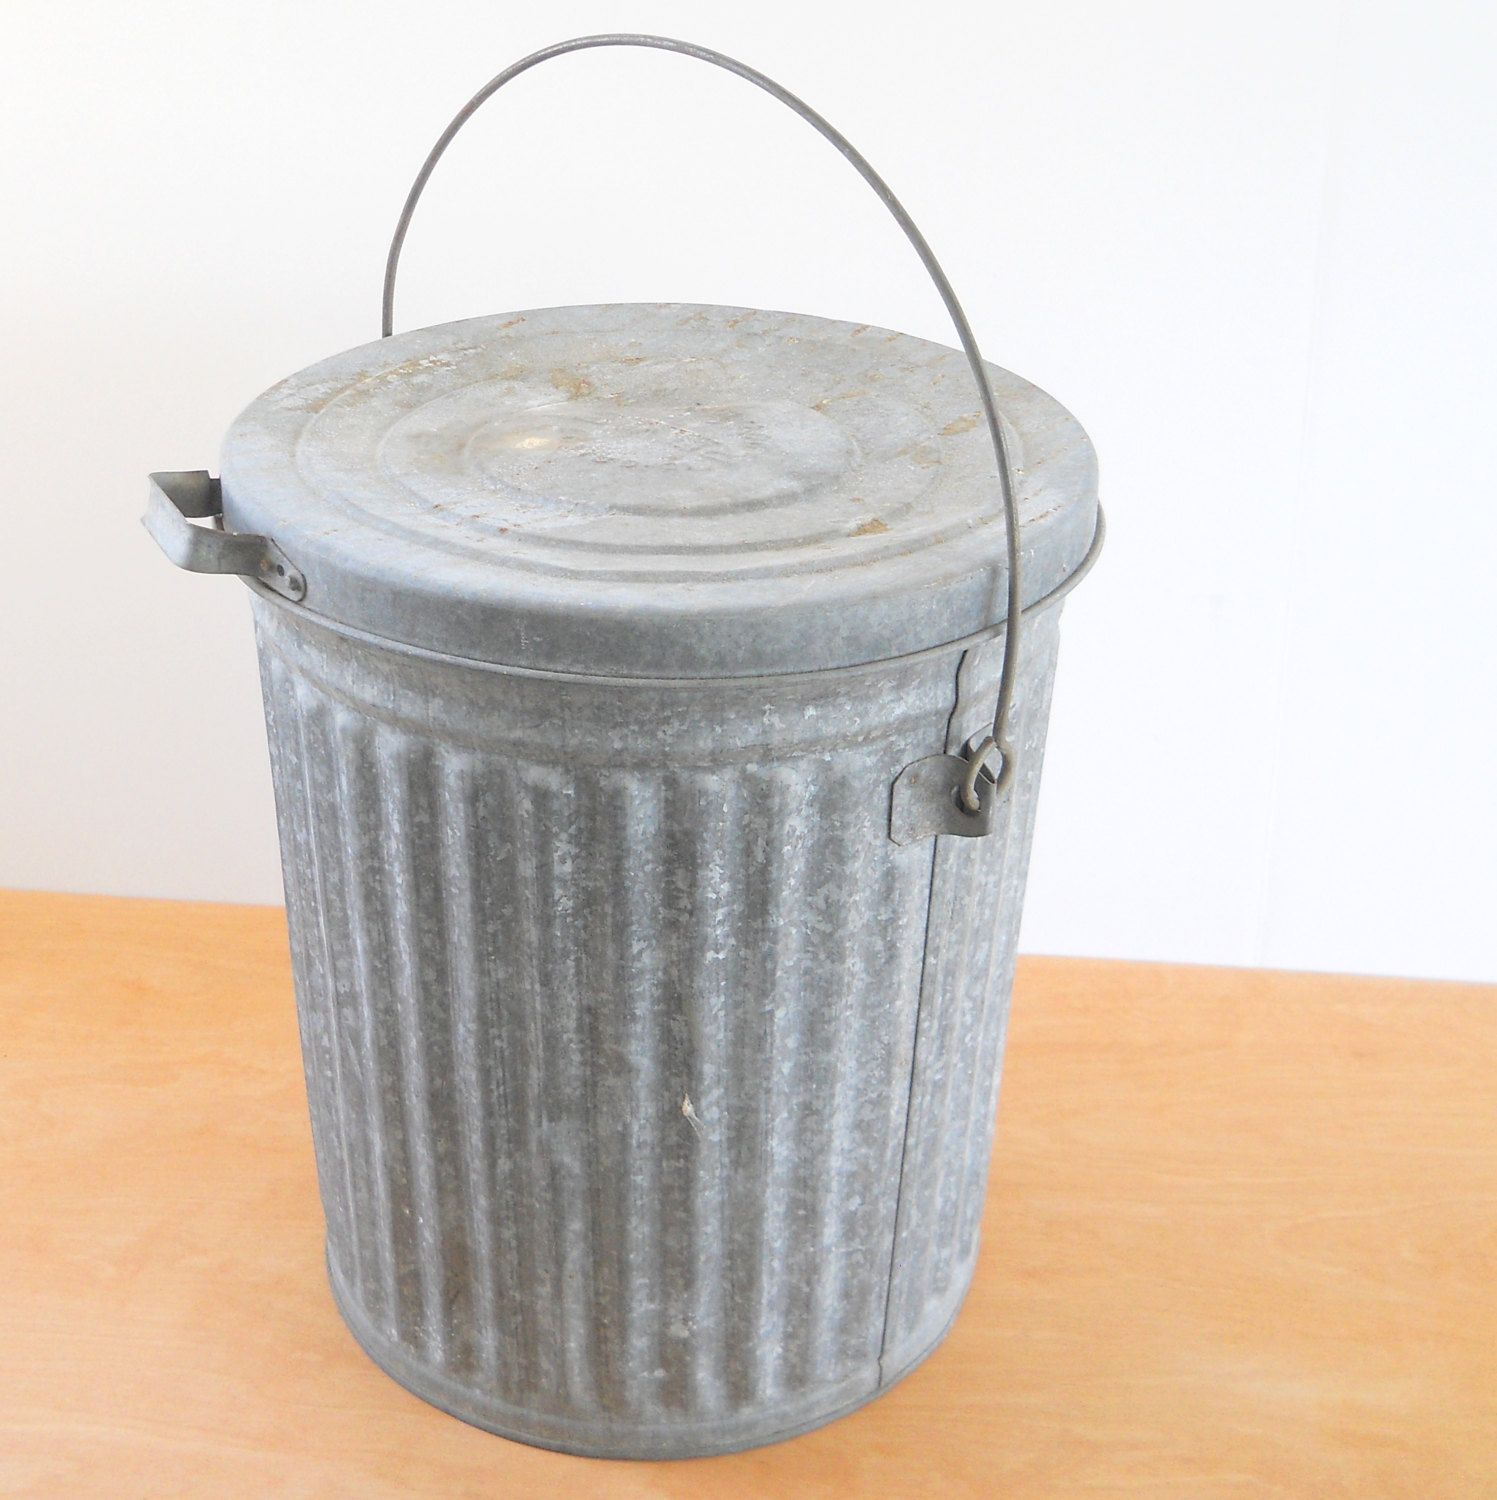 Vintage Kitchen Trash Can Vintage Reeves Galvanized Trash Can Industrial Rustic